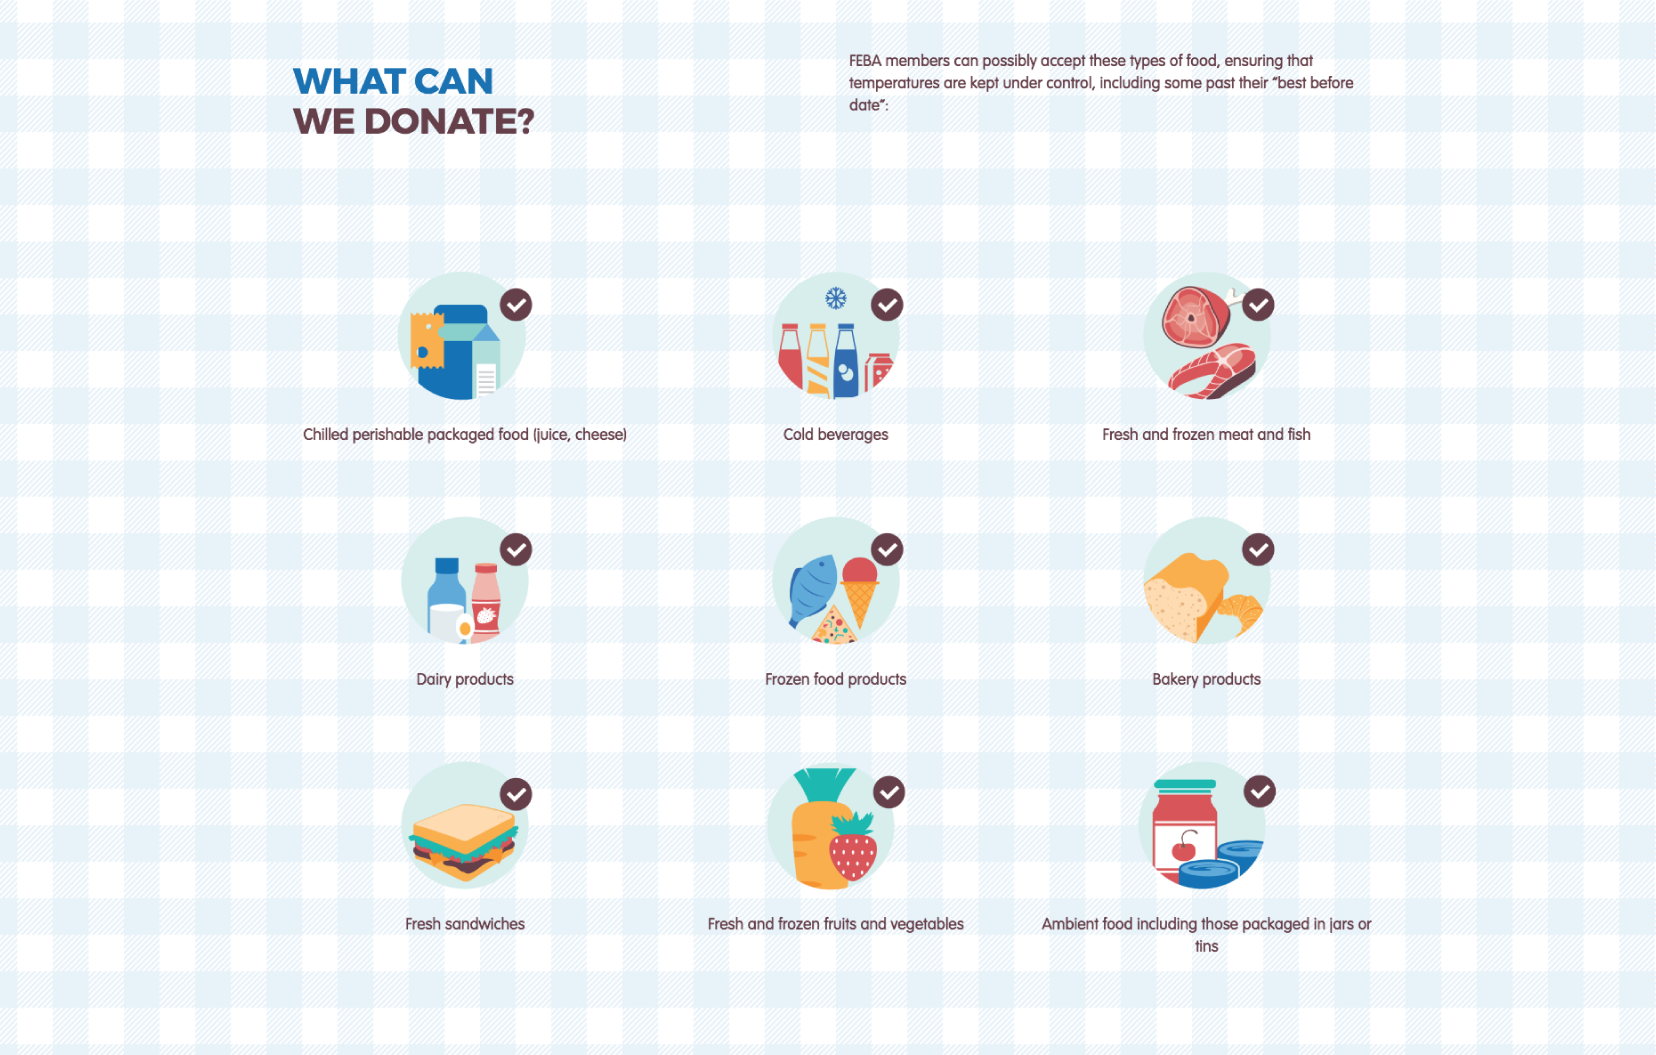 Preventing_food_waste_what_can_we_donate